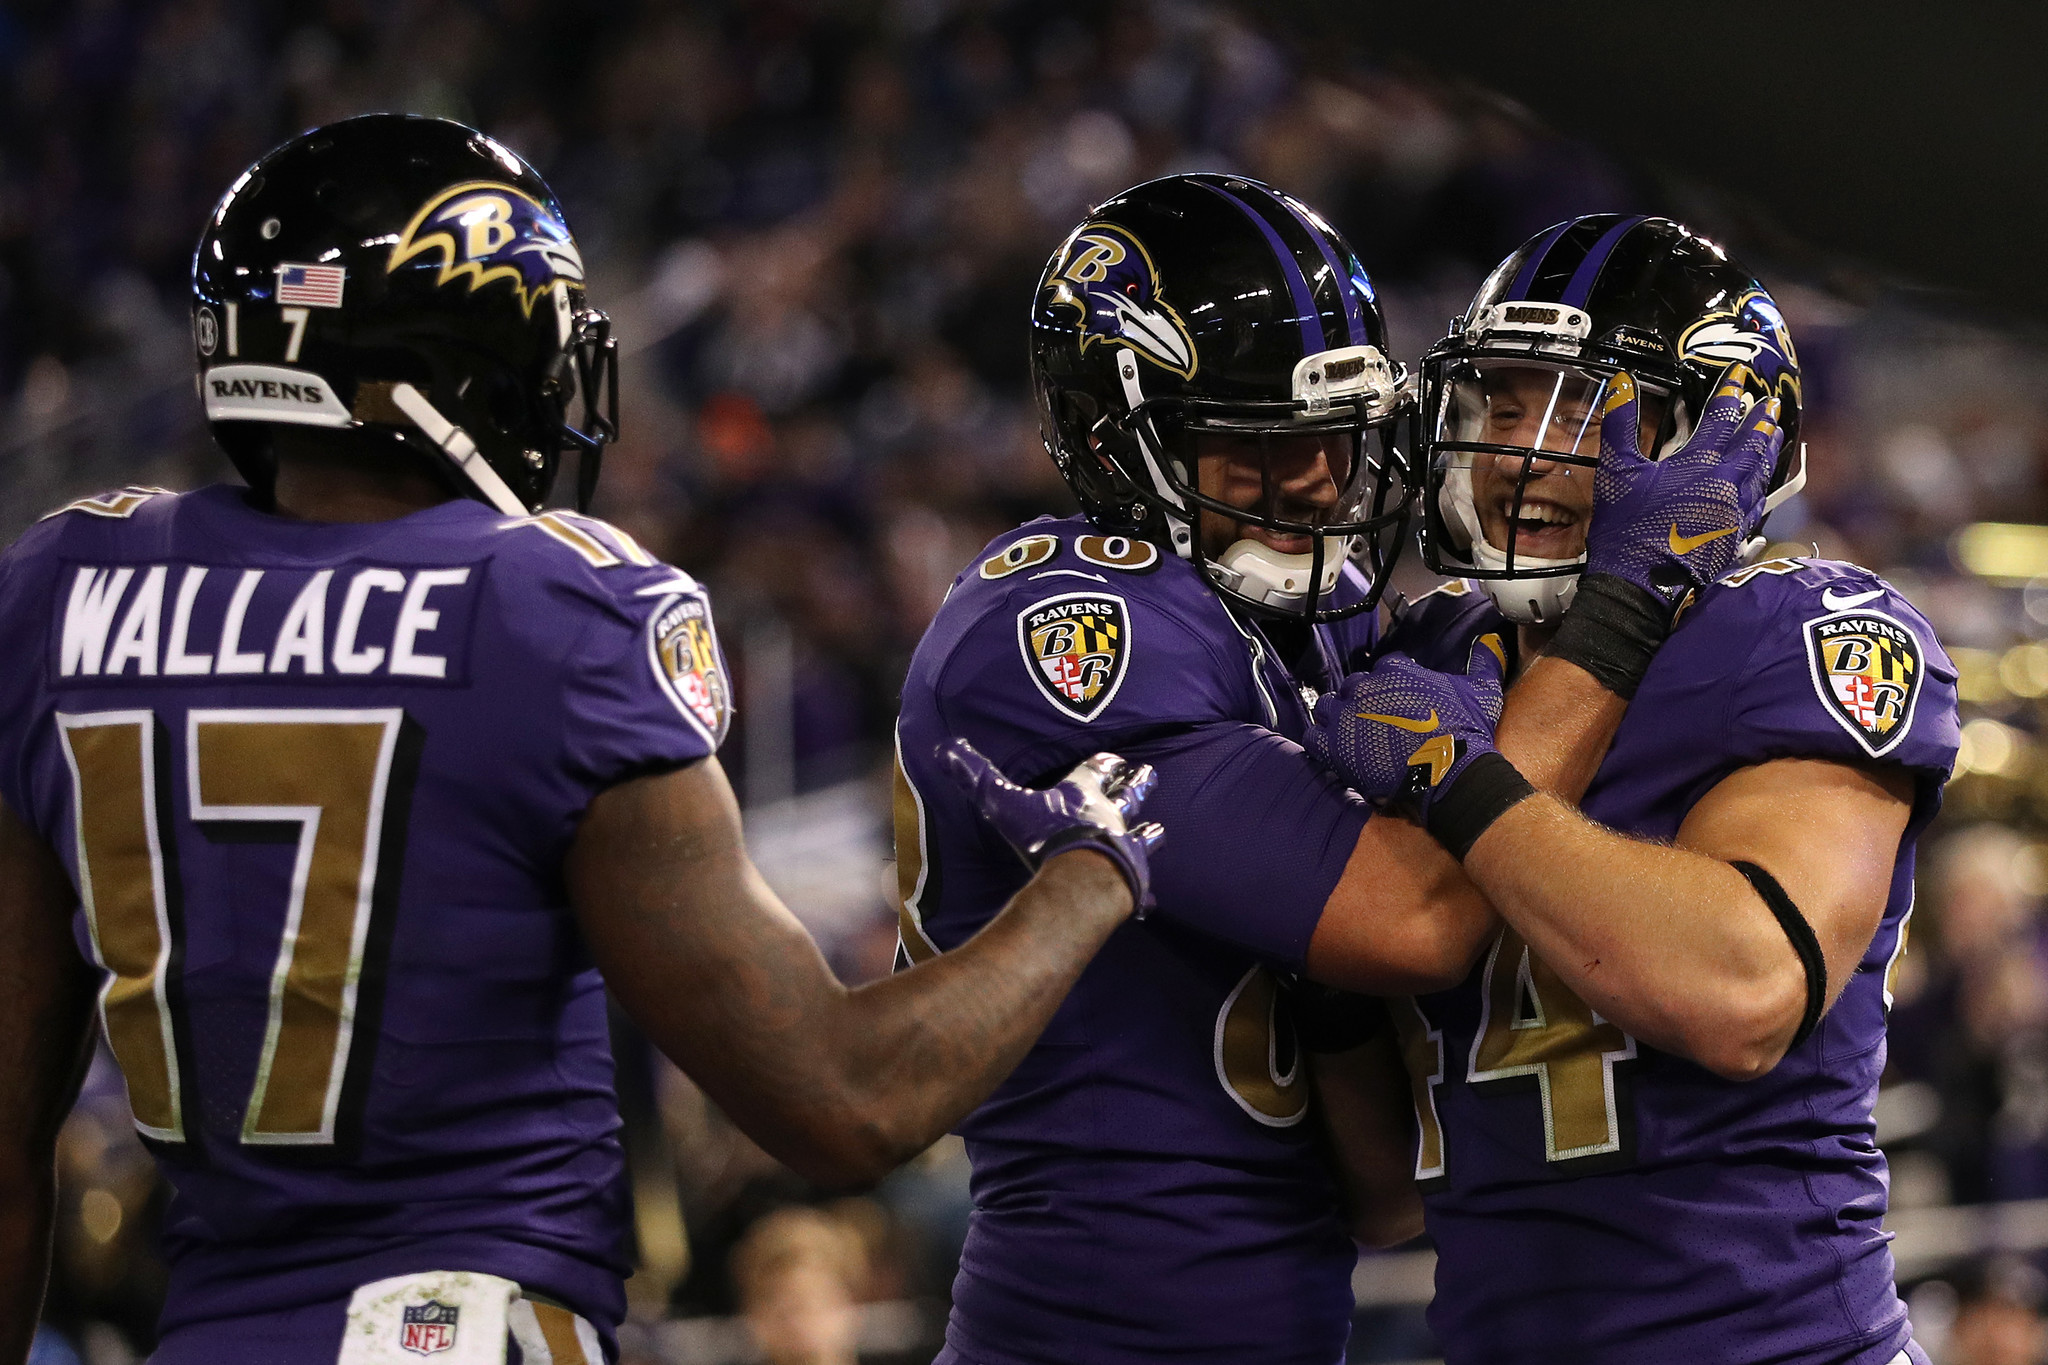 Ravens win AFC North with victory over Browns